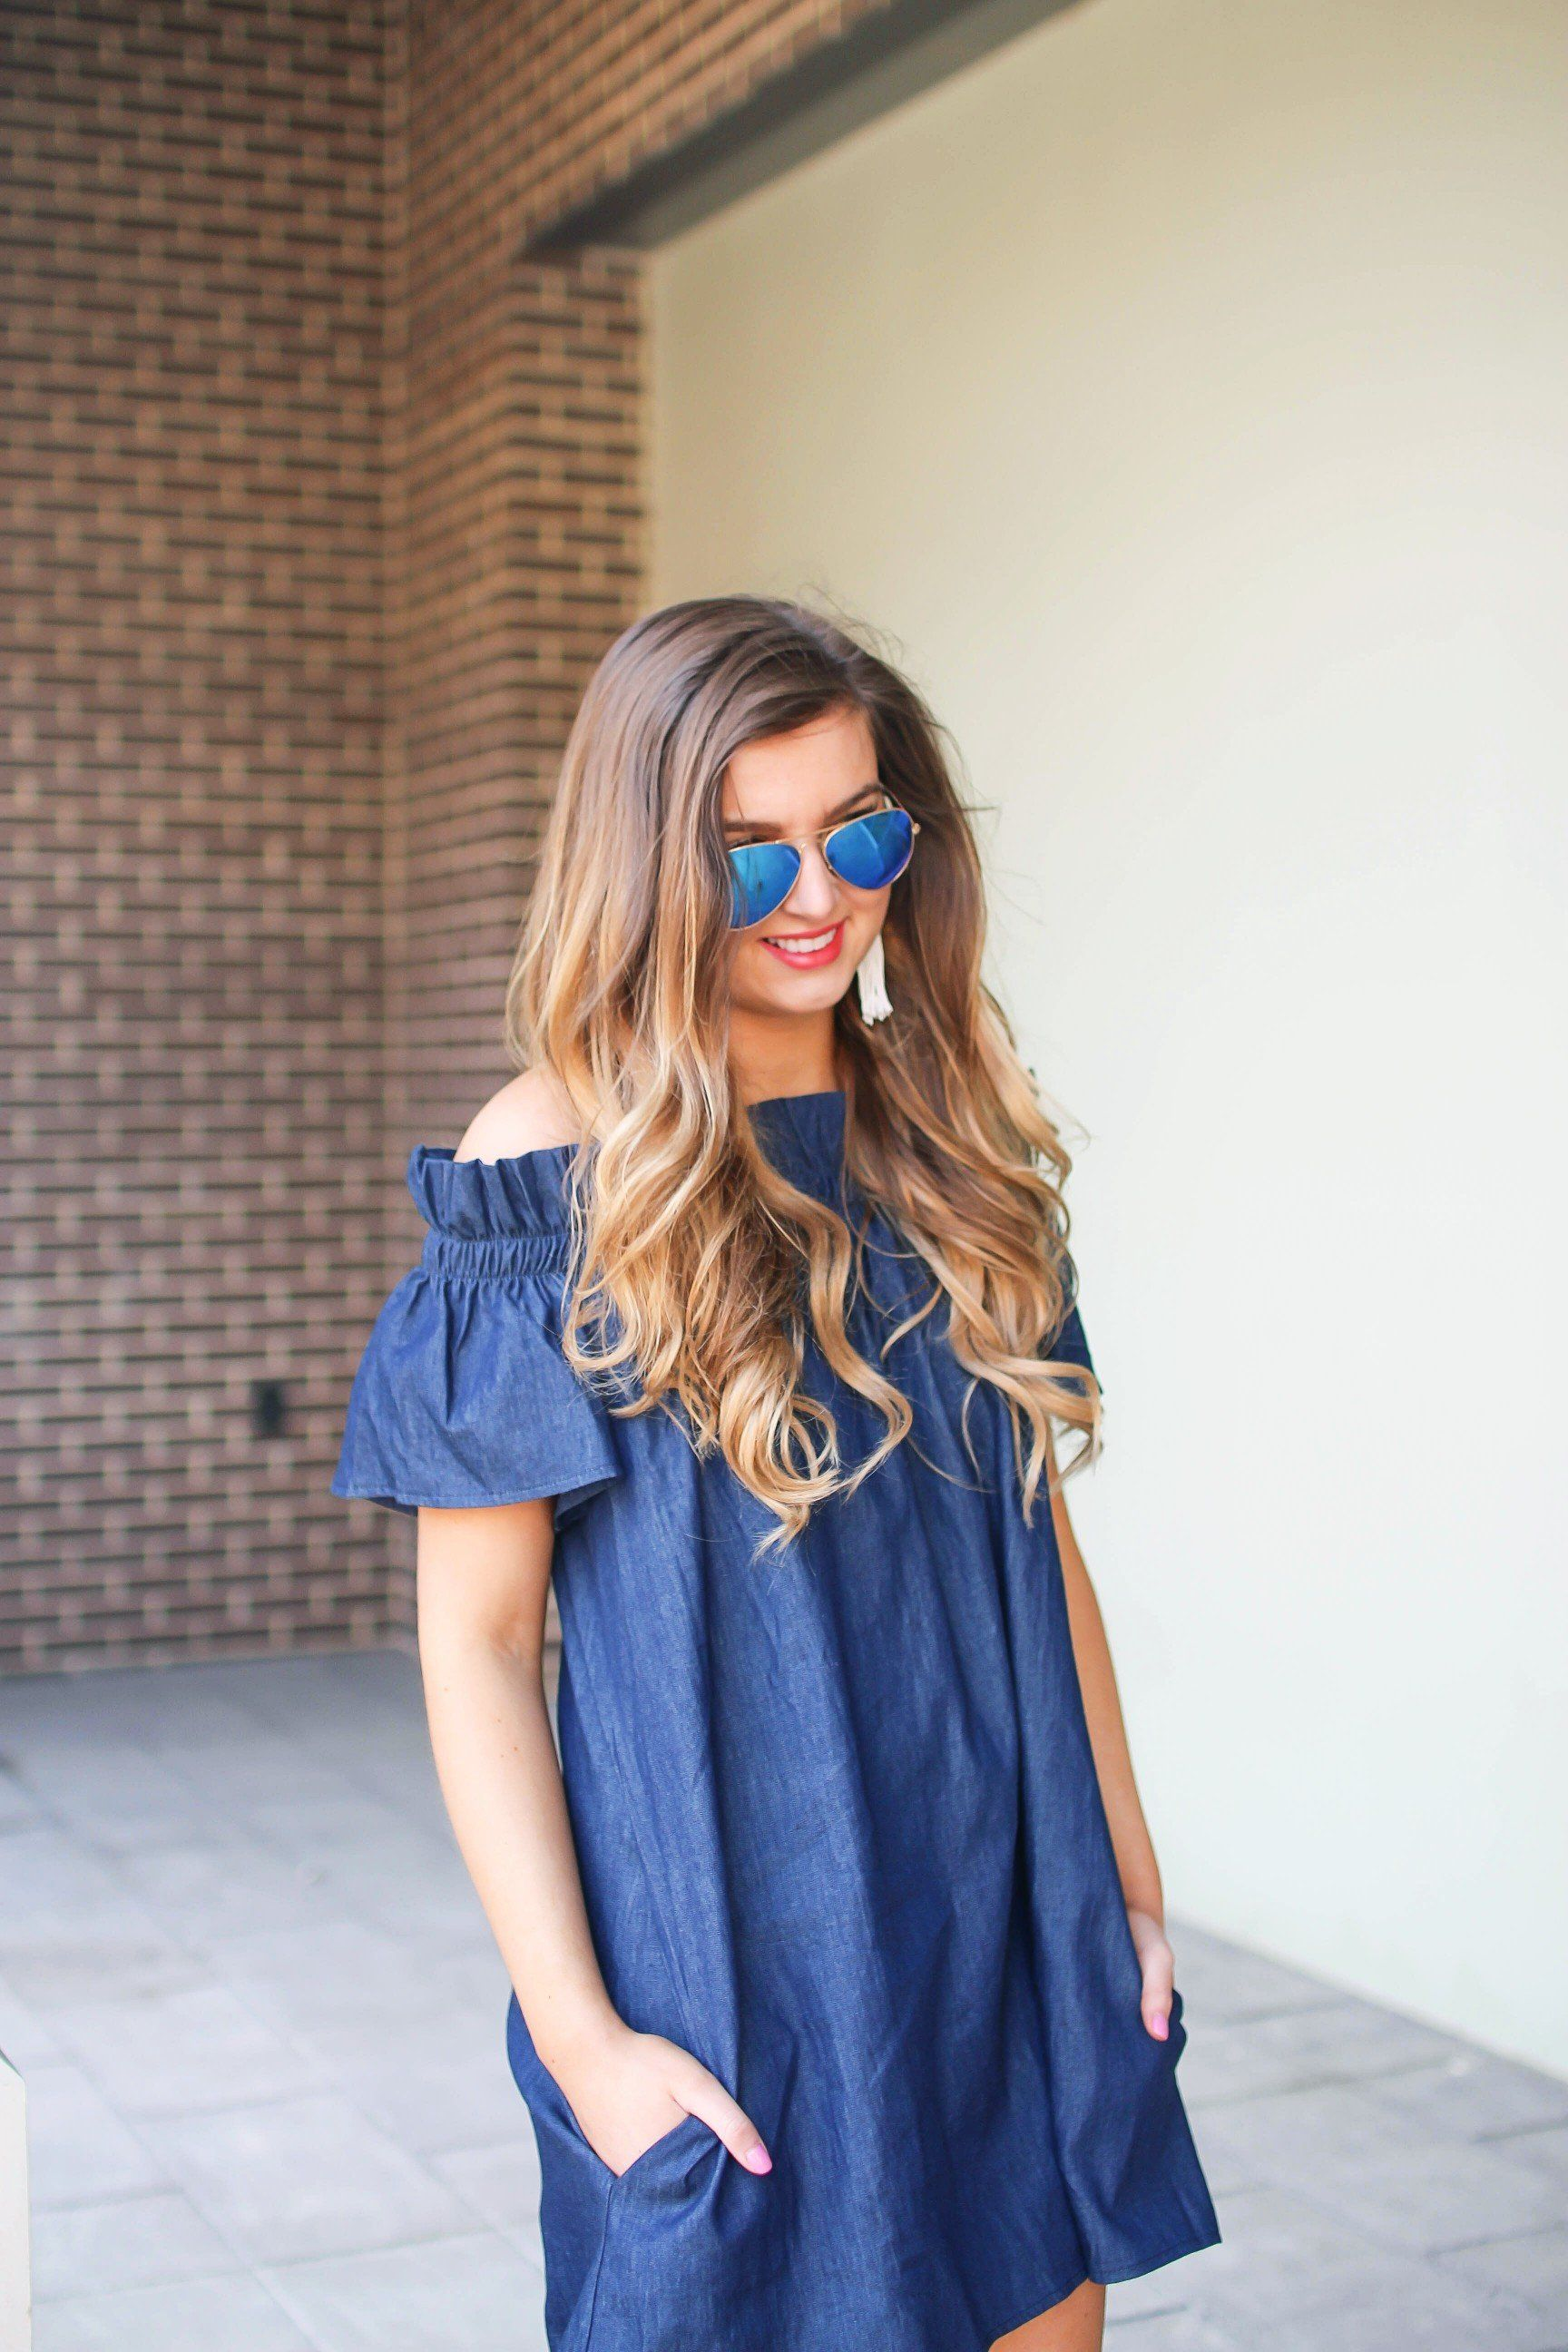 To acquire Perfect the trend blue dress picture trends